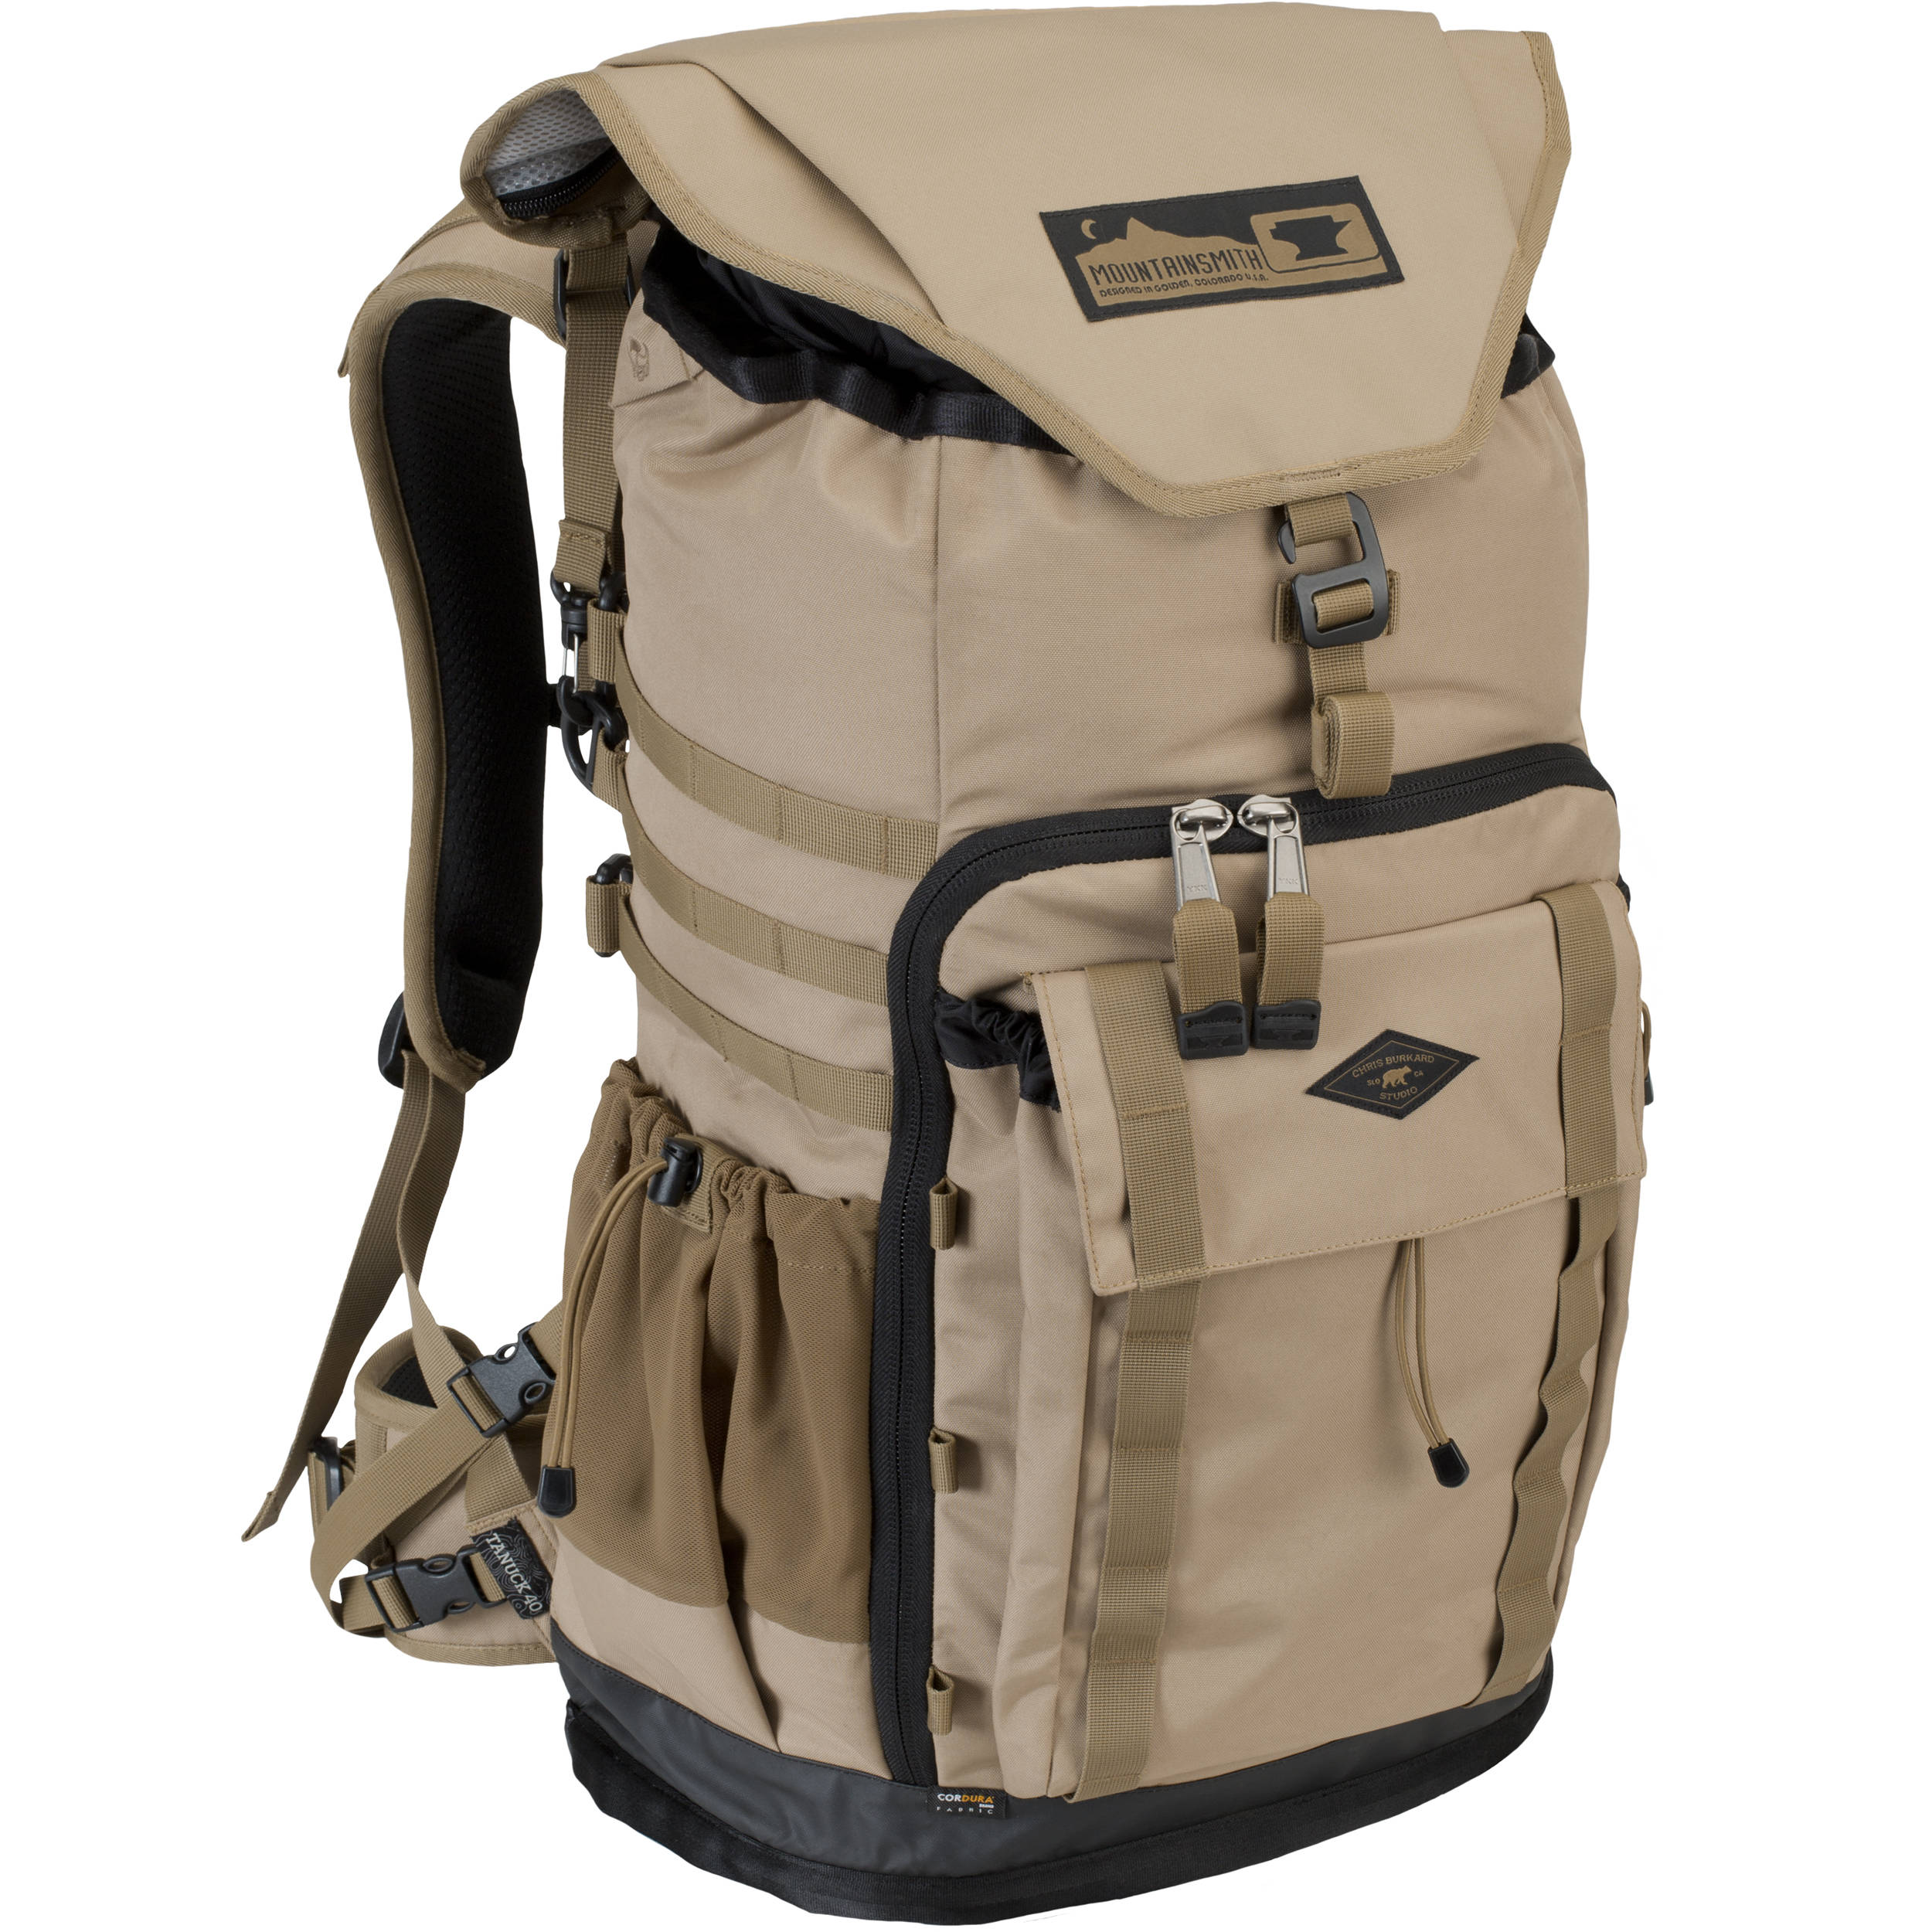 Mountainsmith Tanuck 40l Backpack Designed By Chris Burkard Barley